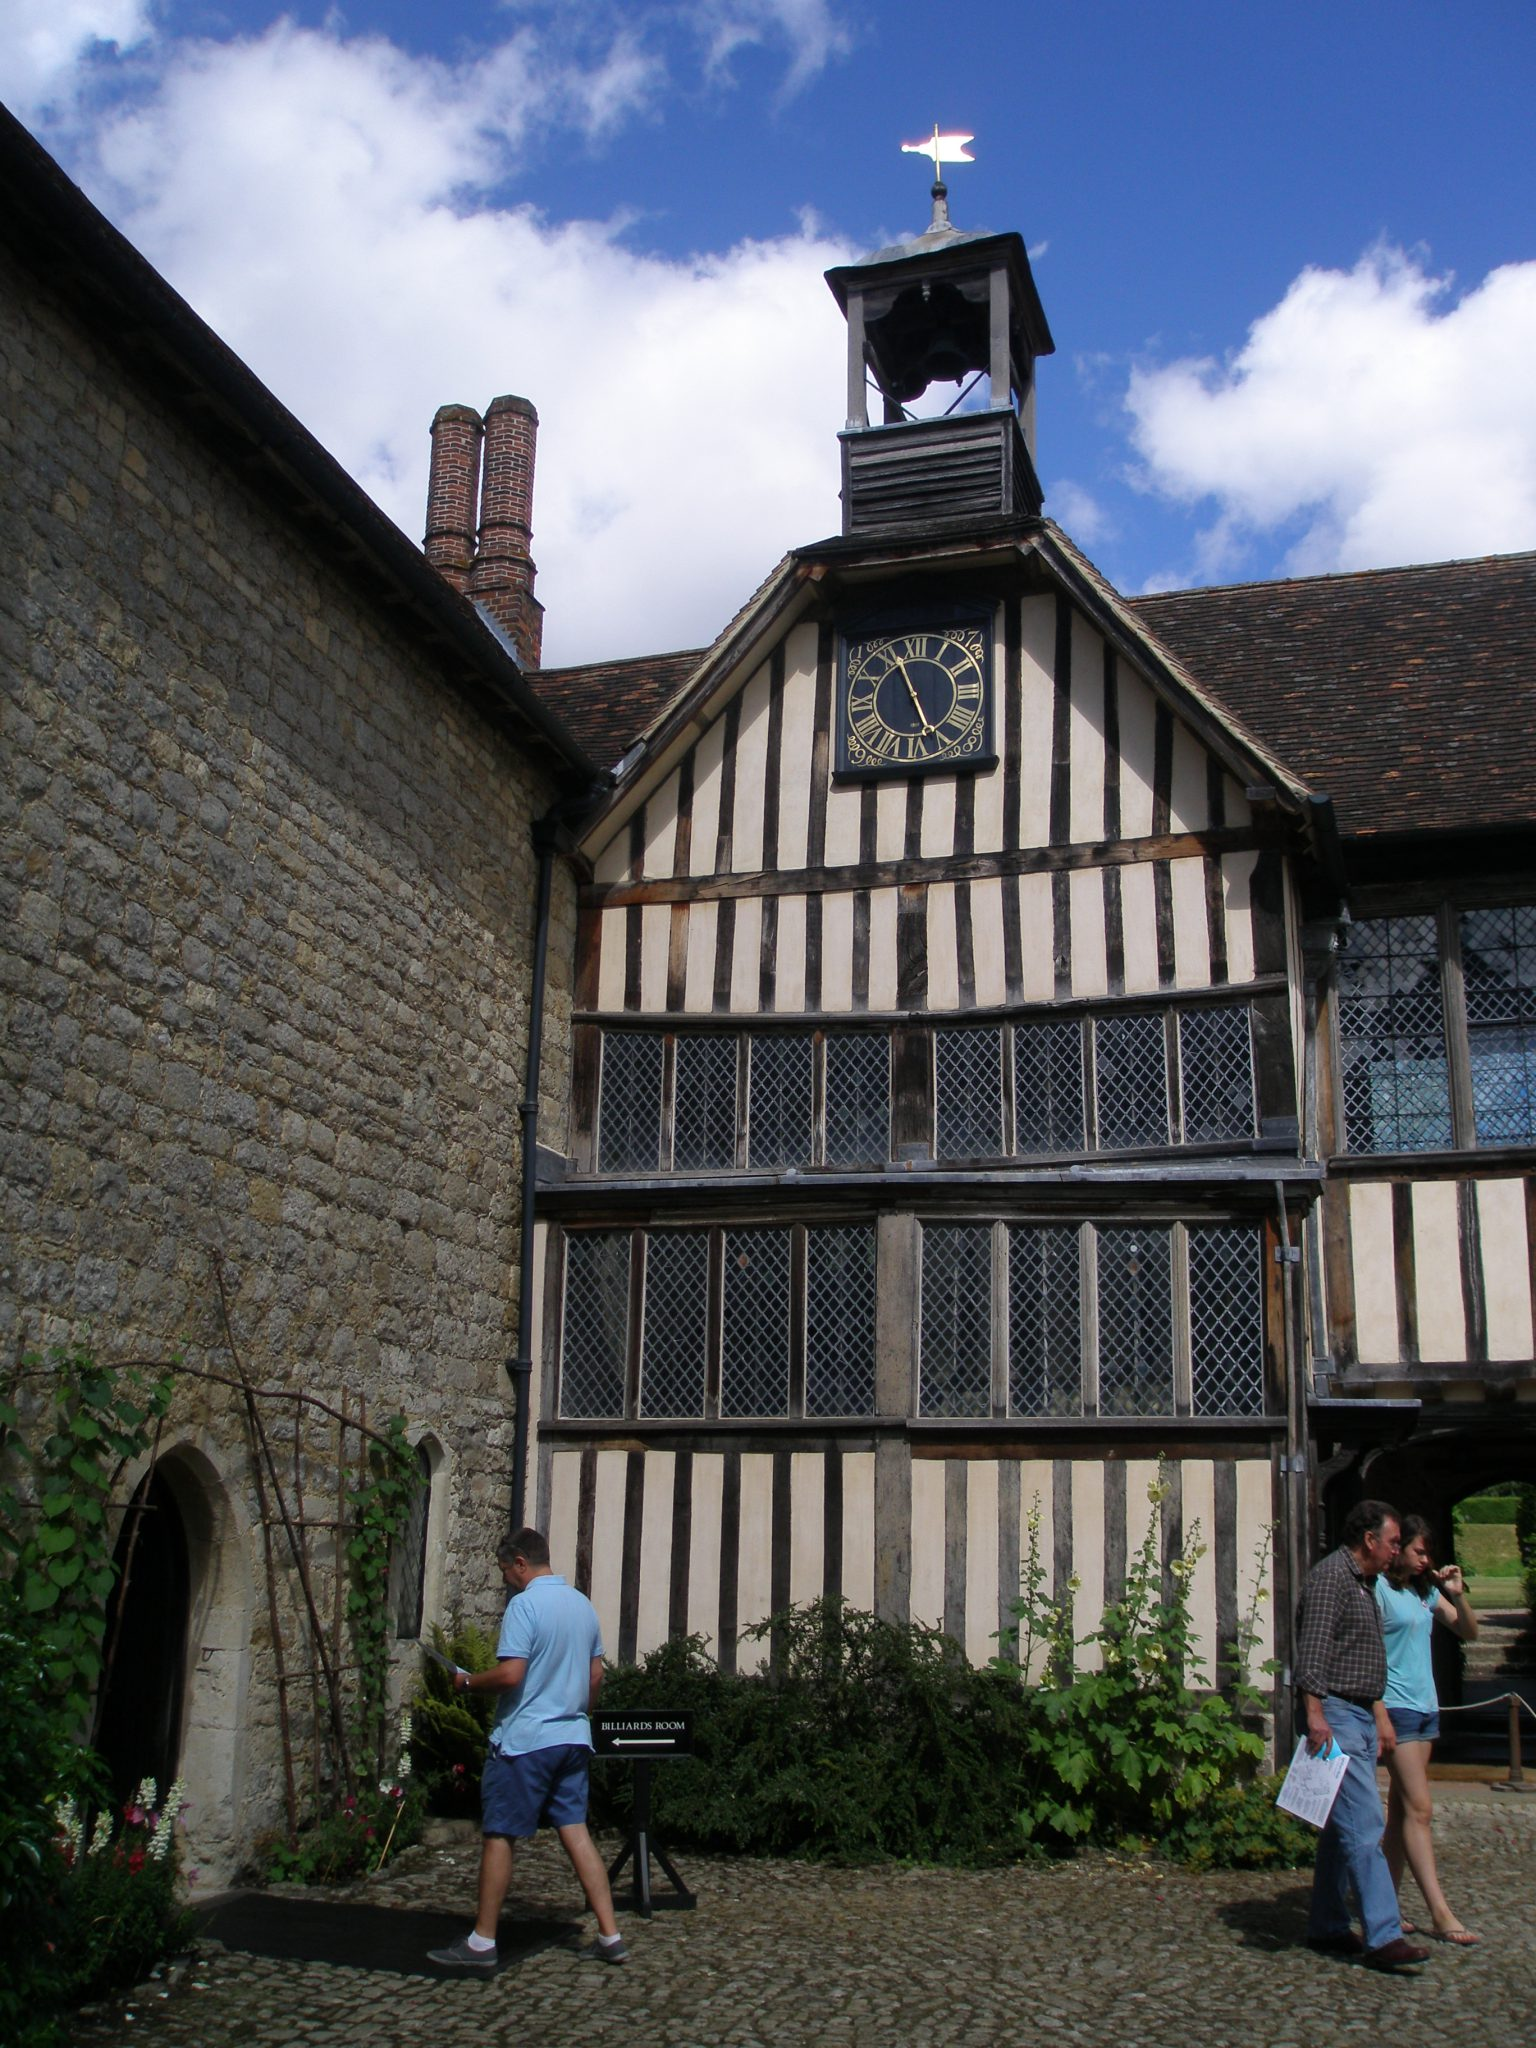 The House Clock, in the Courtyard